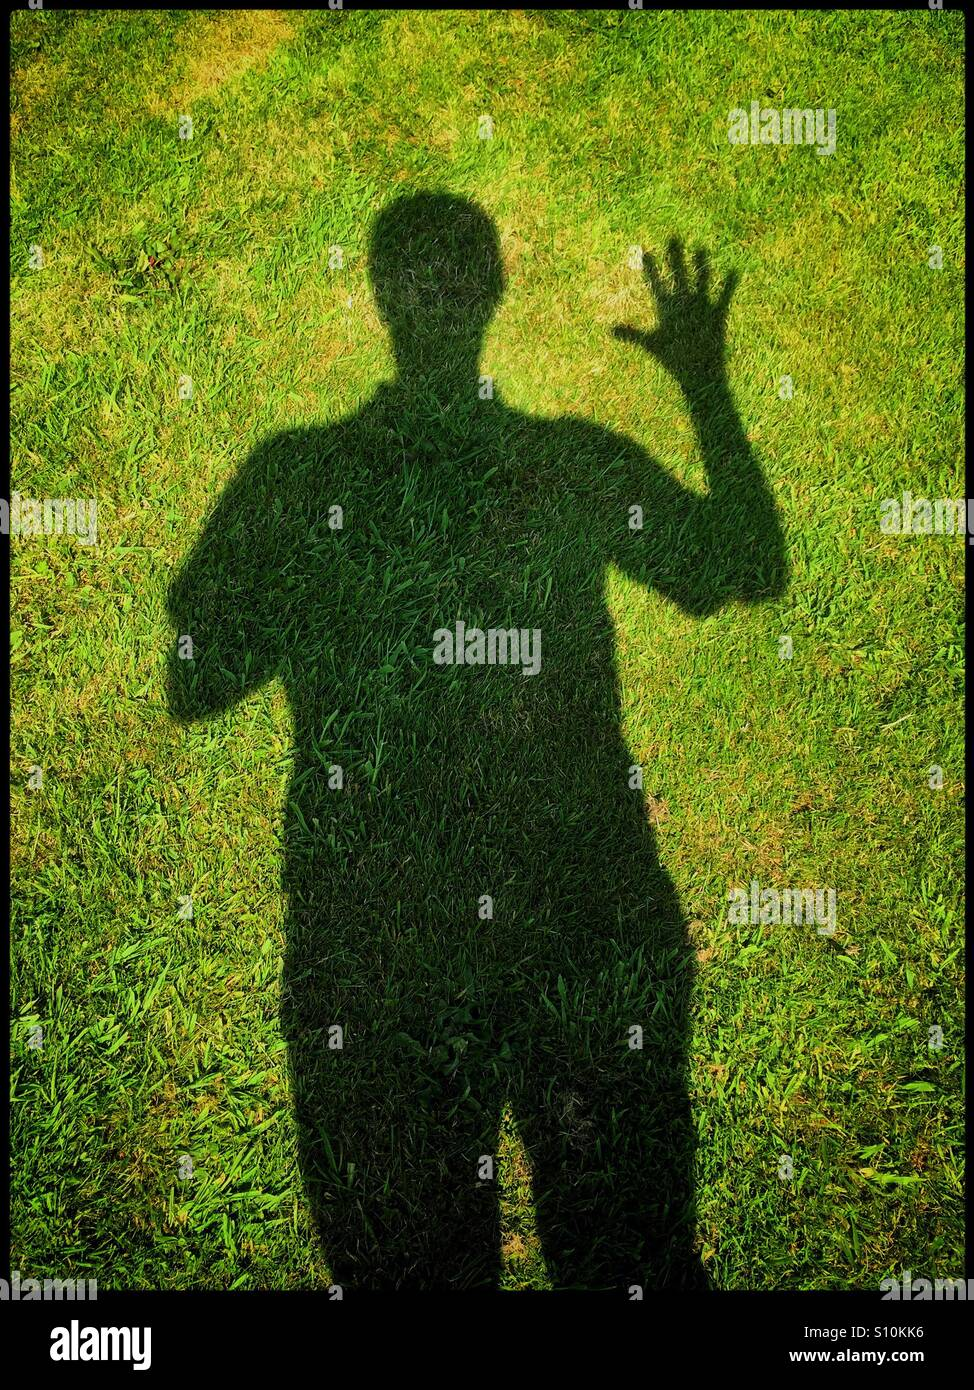 Shadow of a man with one arm raised and all fingers and thumb separated in a waving gesture. It's a sunny summers - Stock Image